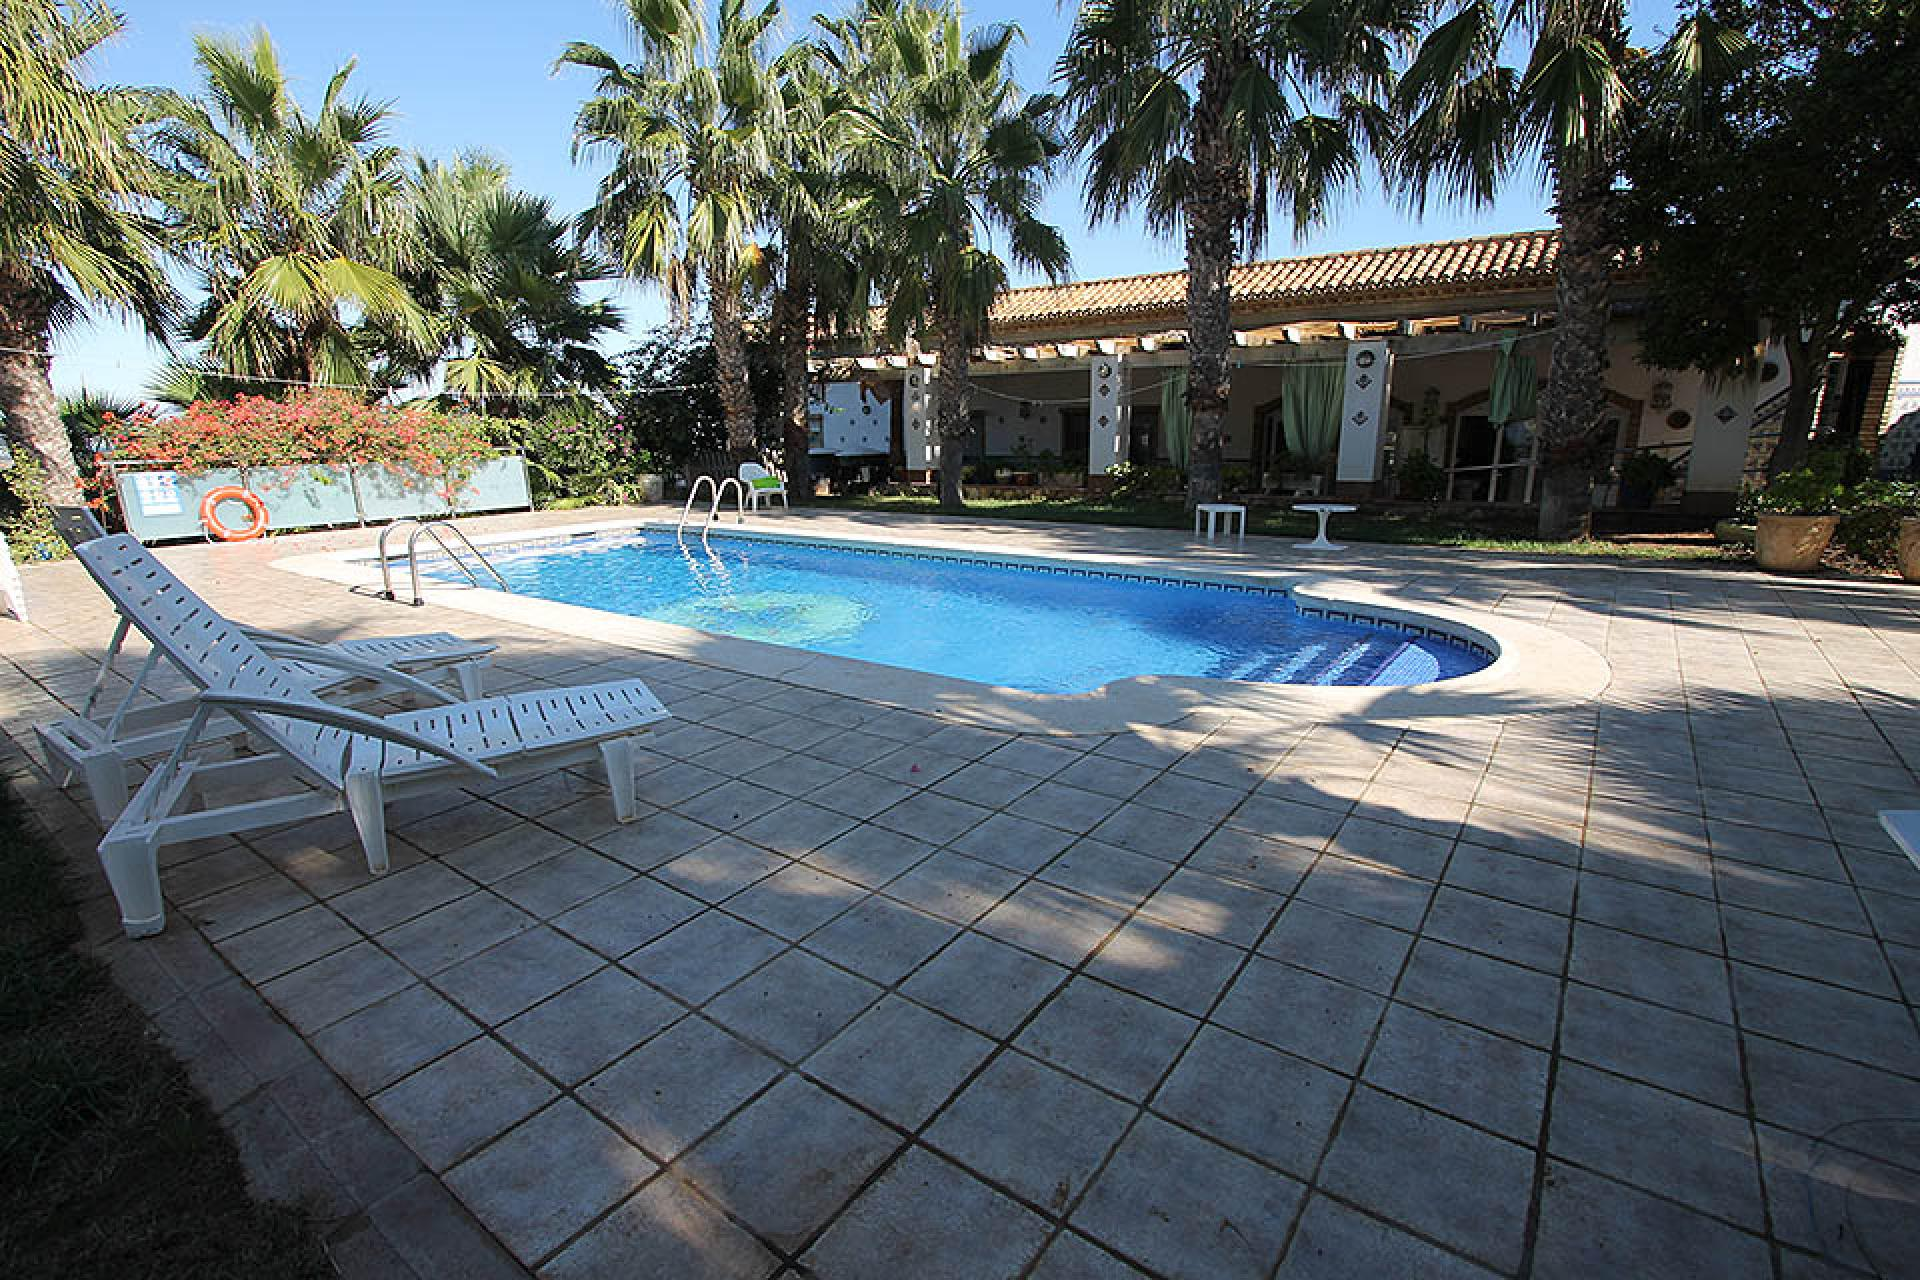 Country house in Cartagena (Alicante)